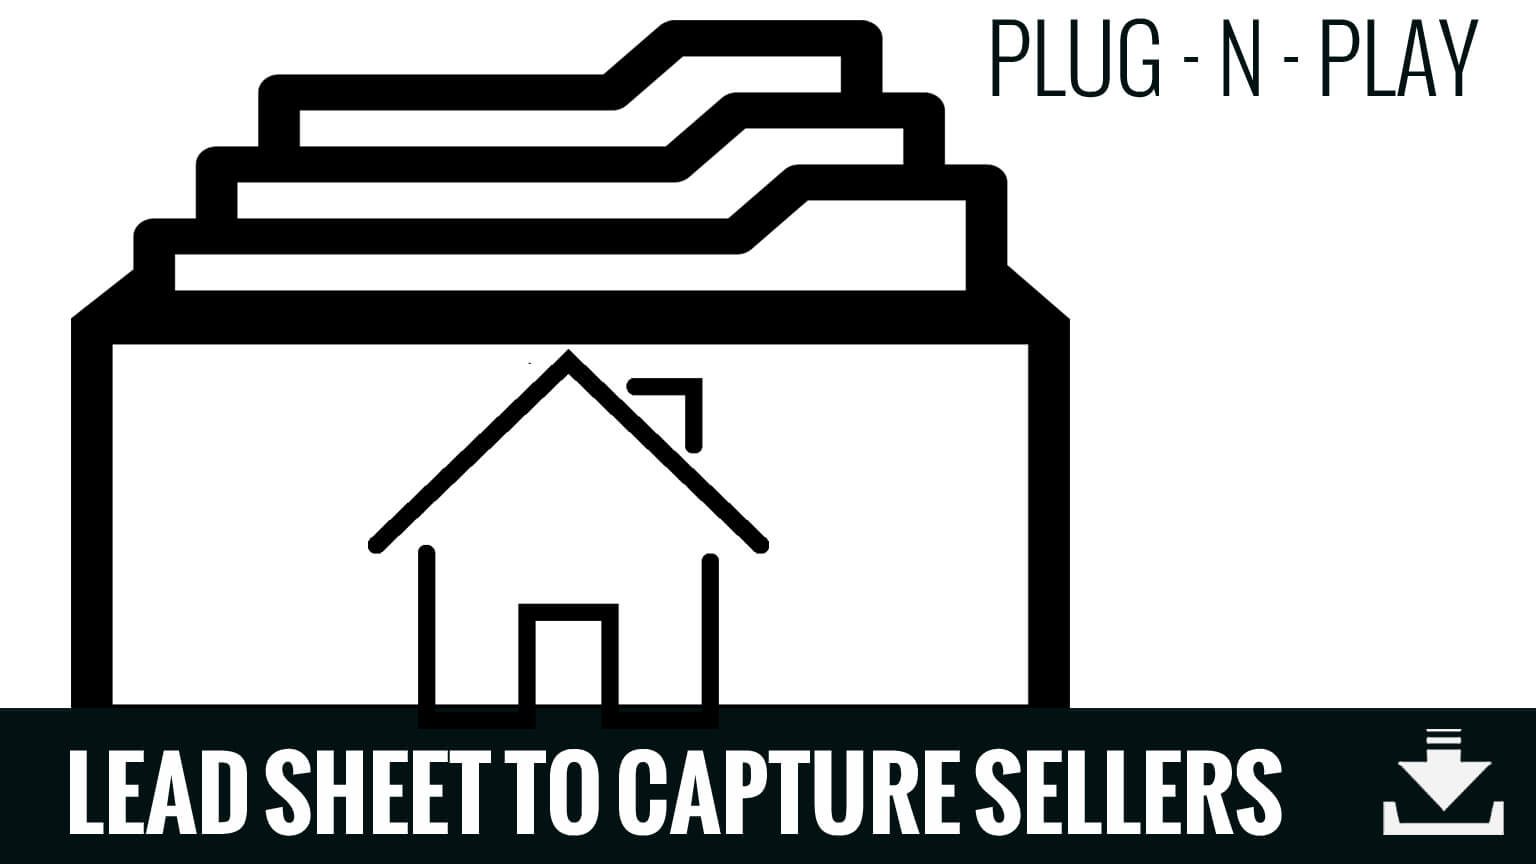 download the lead sheet for capturing sellers